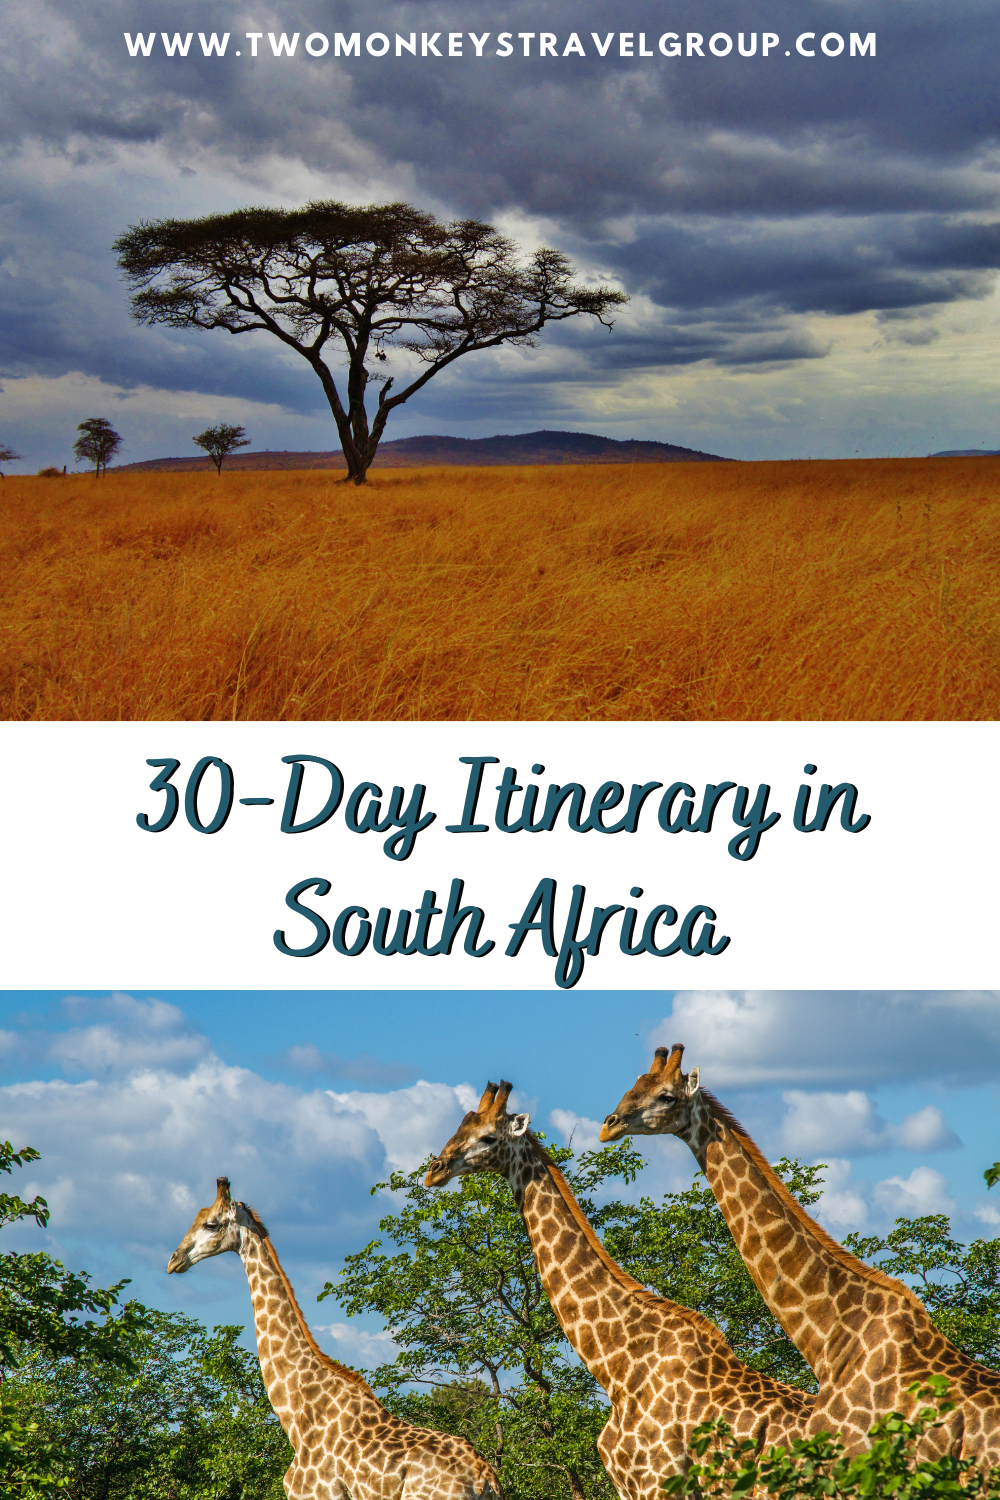 30 Day Itinerary in South Africa from Johannesburg, Rustenburg, Eastern Cape to Cape Town